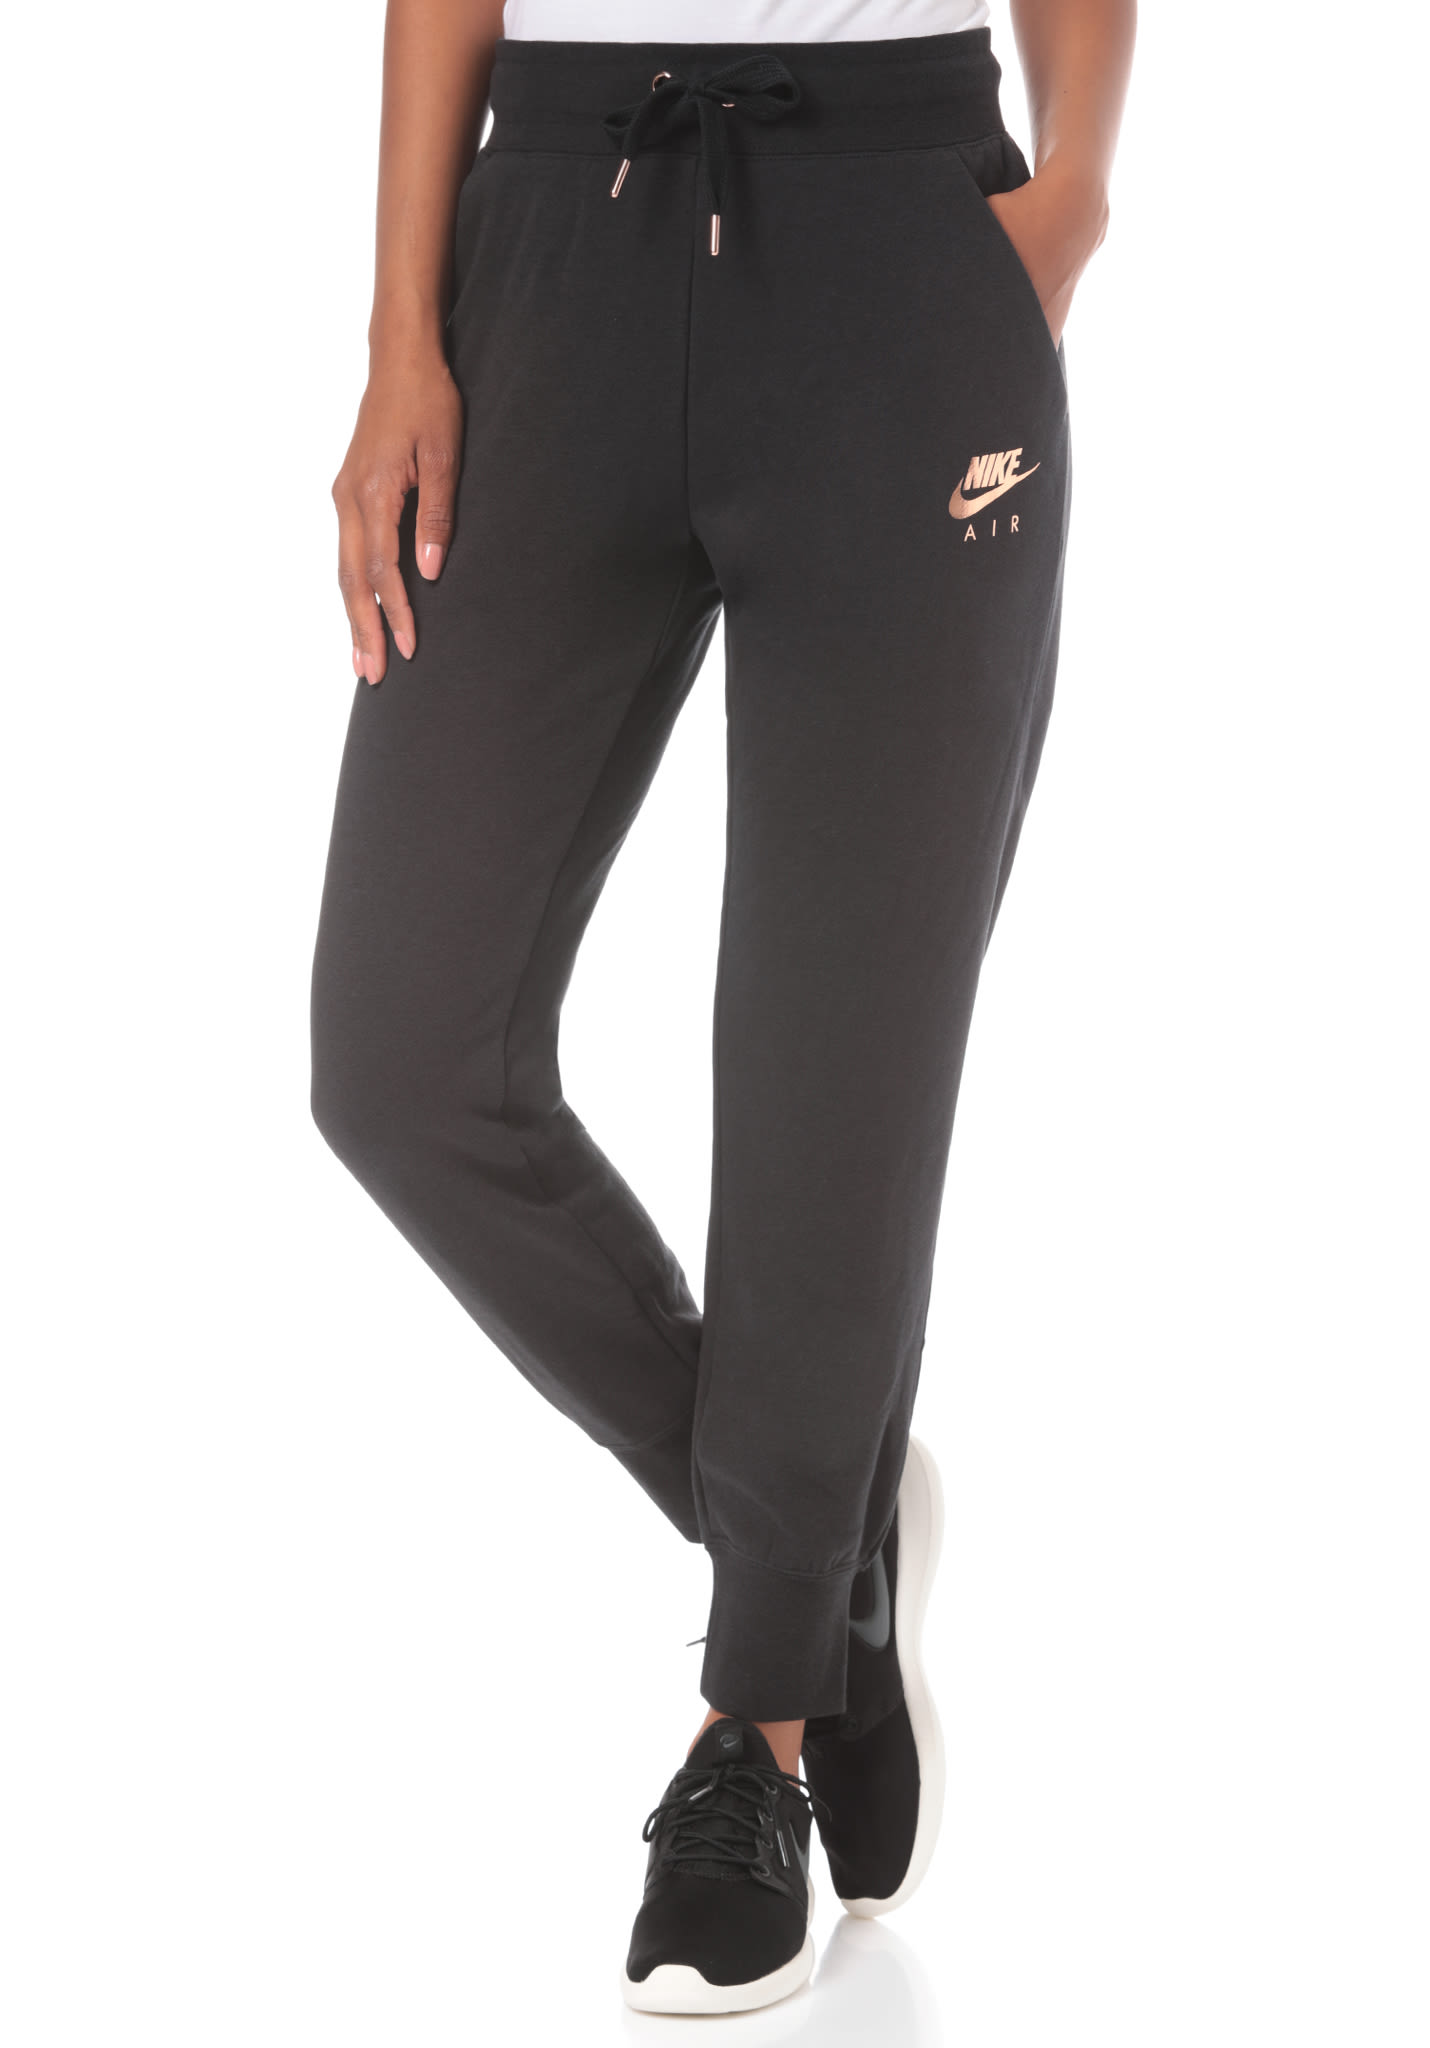 e2e2c952f8 NIKE SPORTSWEAR Air Reg - Trackpants for Women - Black - Planet Sports